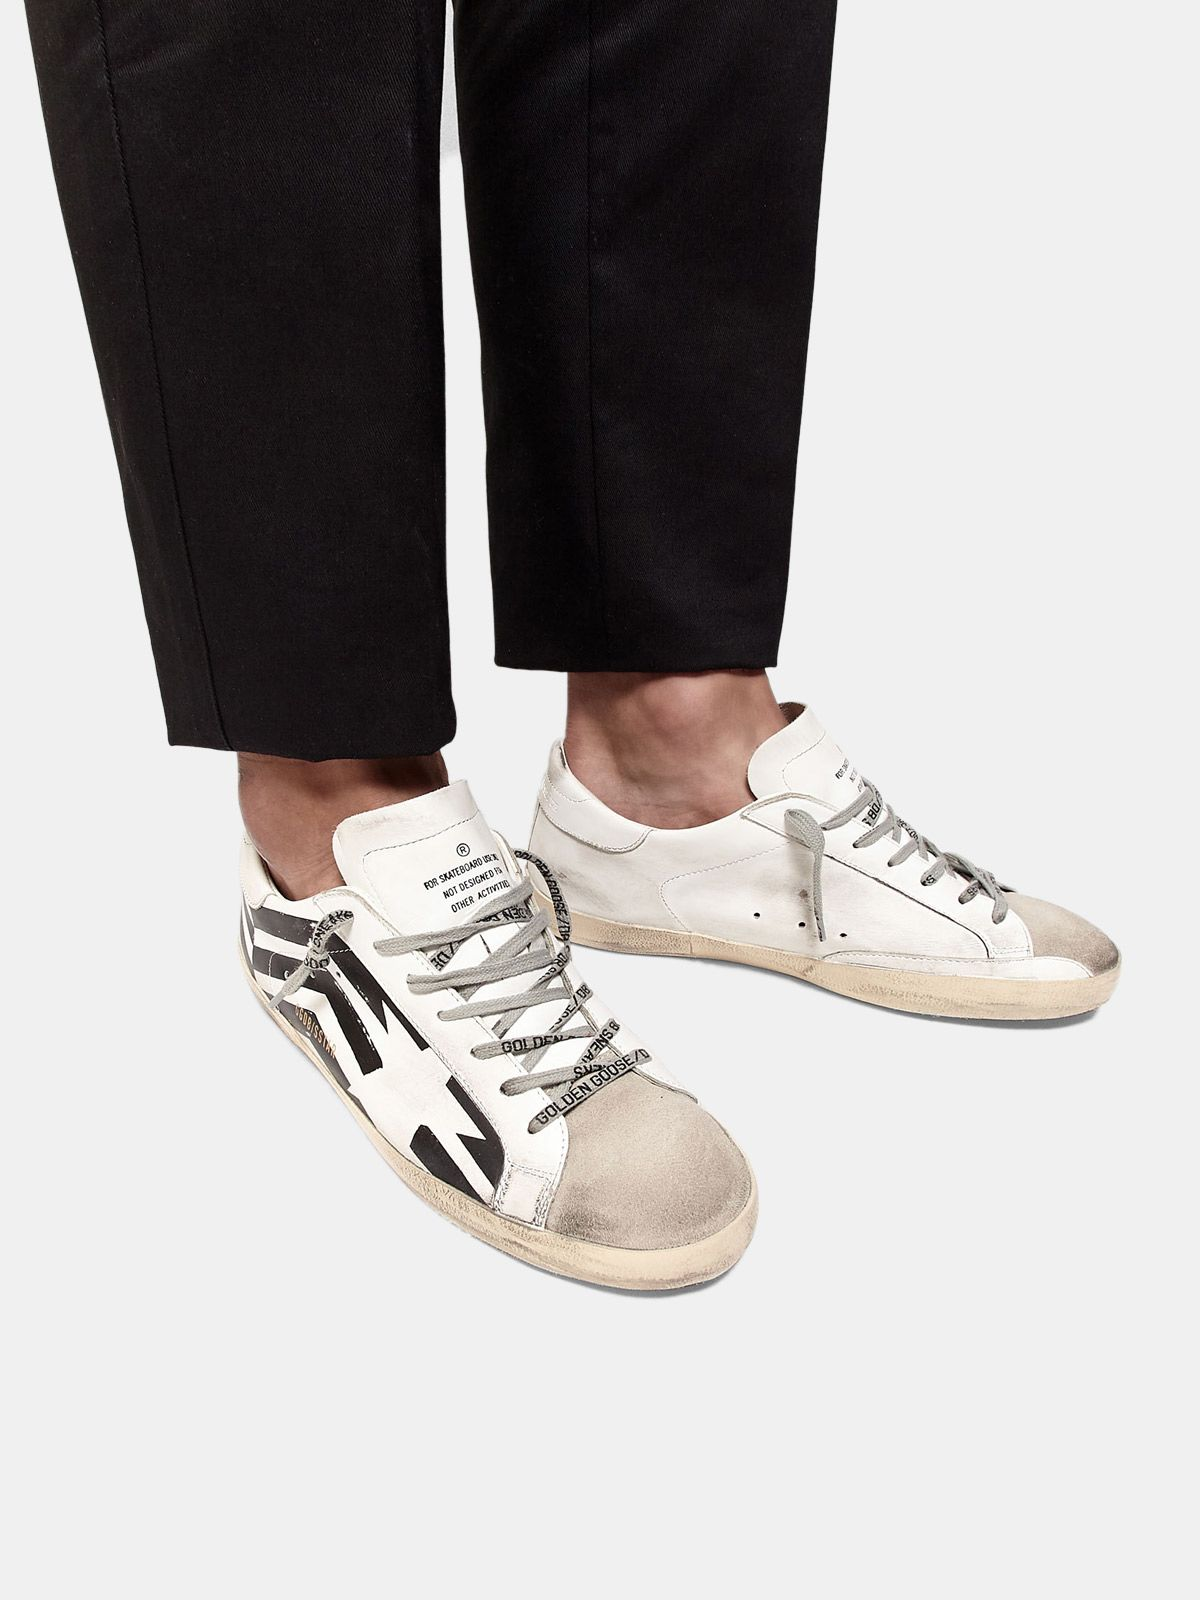 Golden Goose - Sneakers Super-Star con stampa flag GGDB in